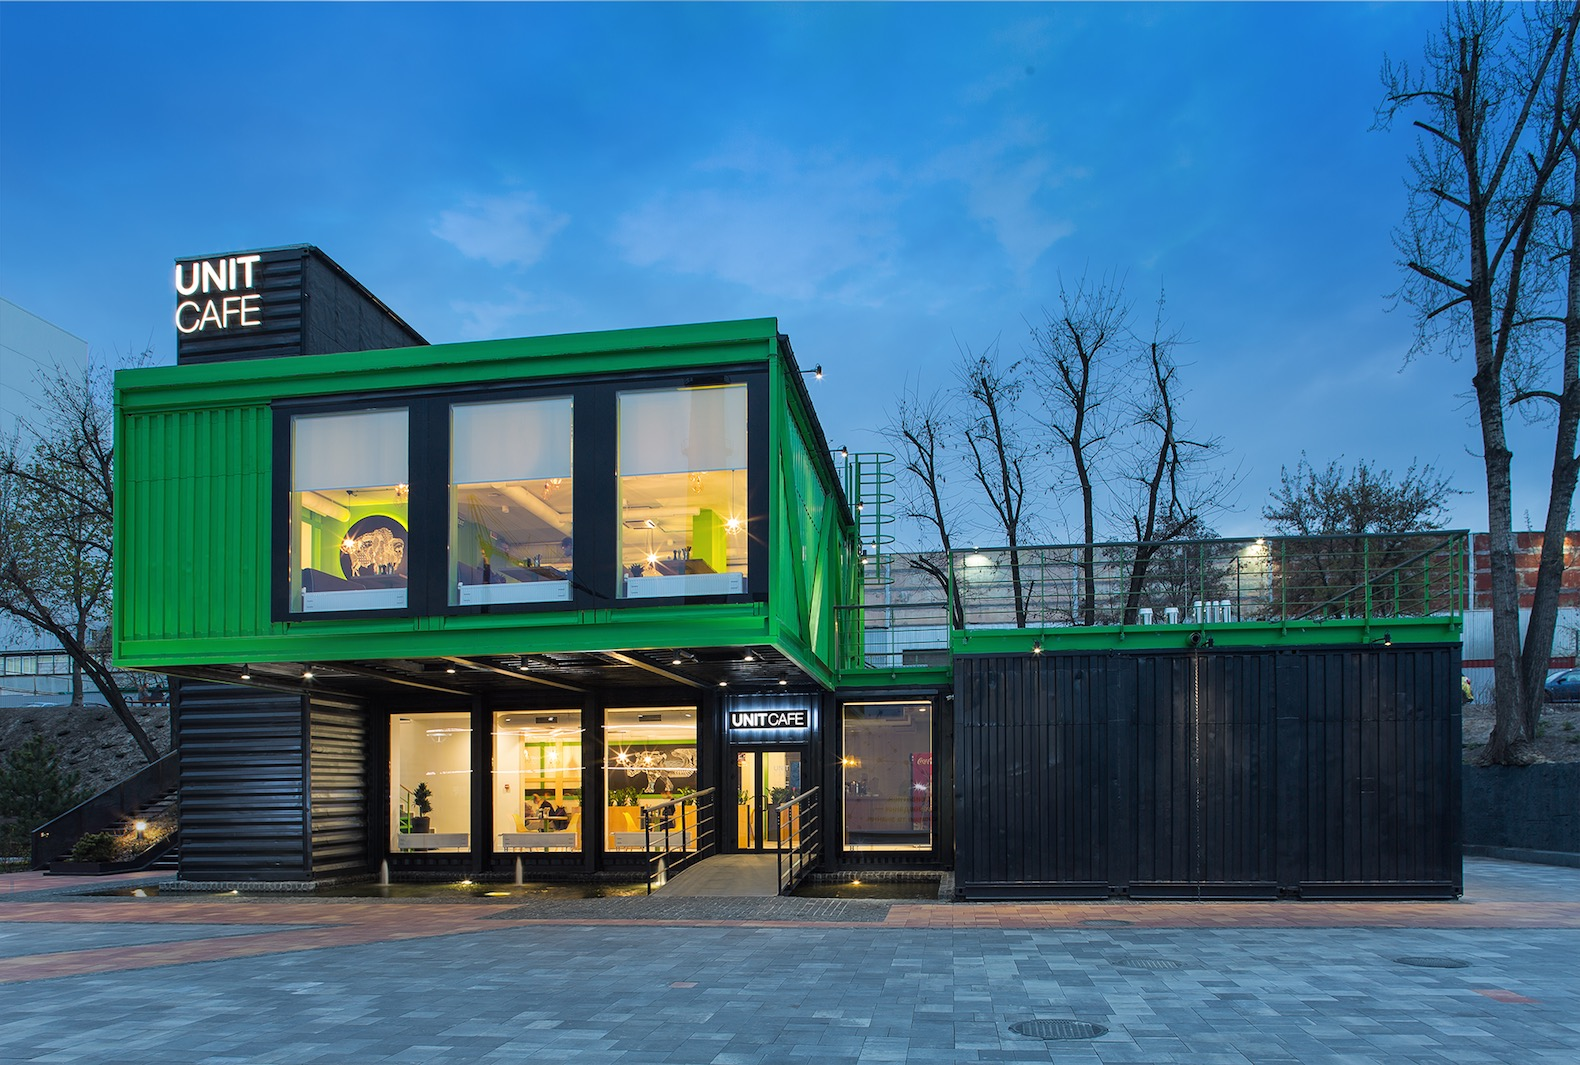 shipping container architecture inhabitat green design innovation architecture green building. Black Bedroom Furniture Sets. Home Design Ideas